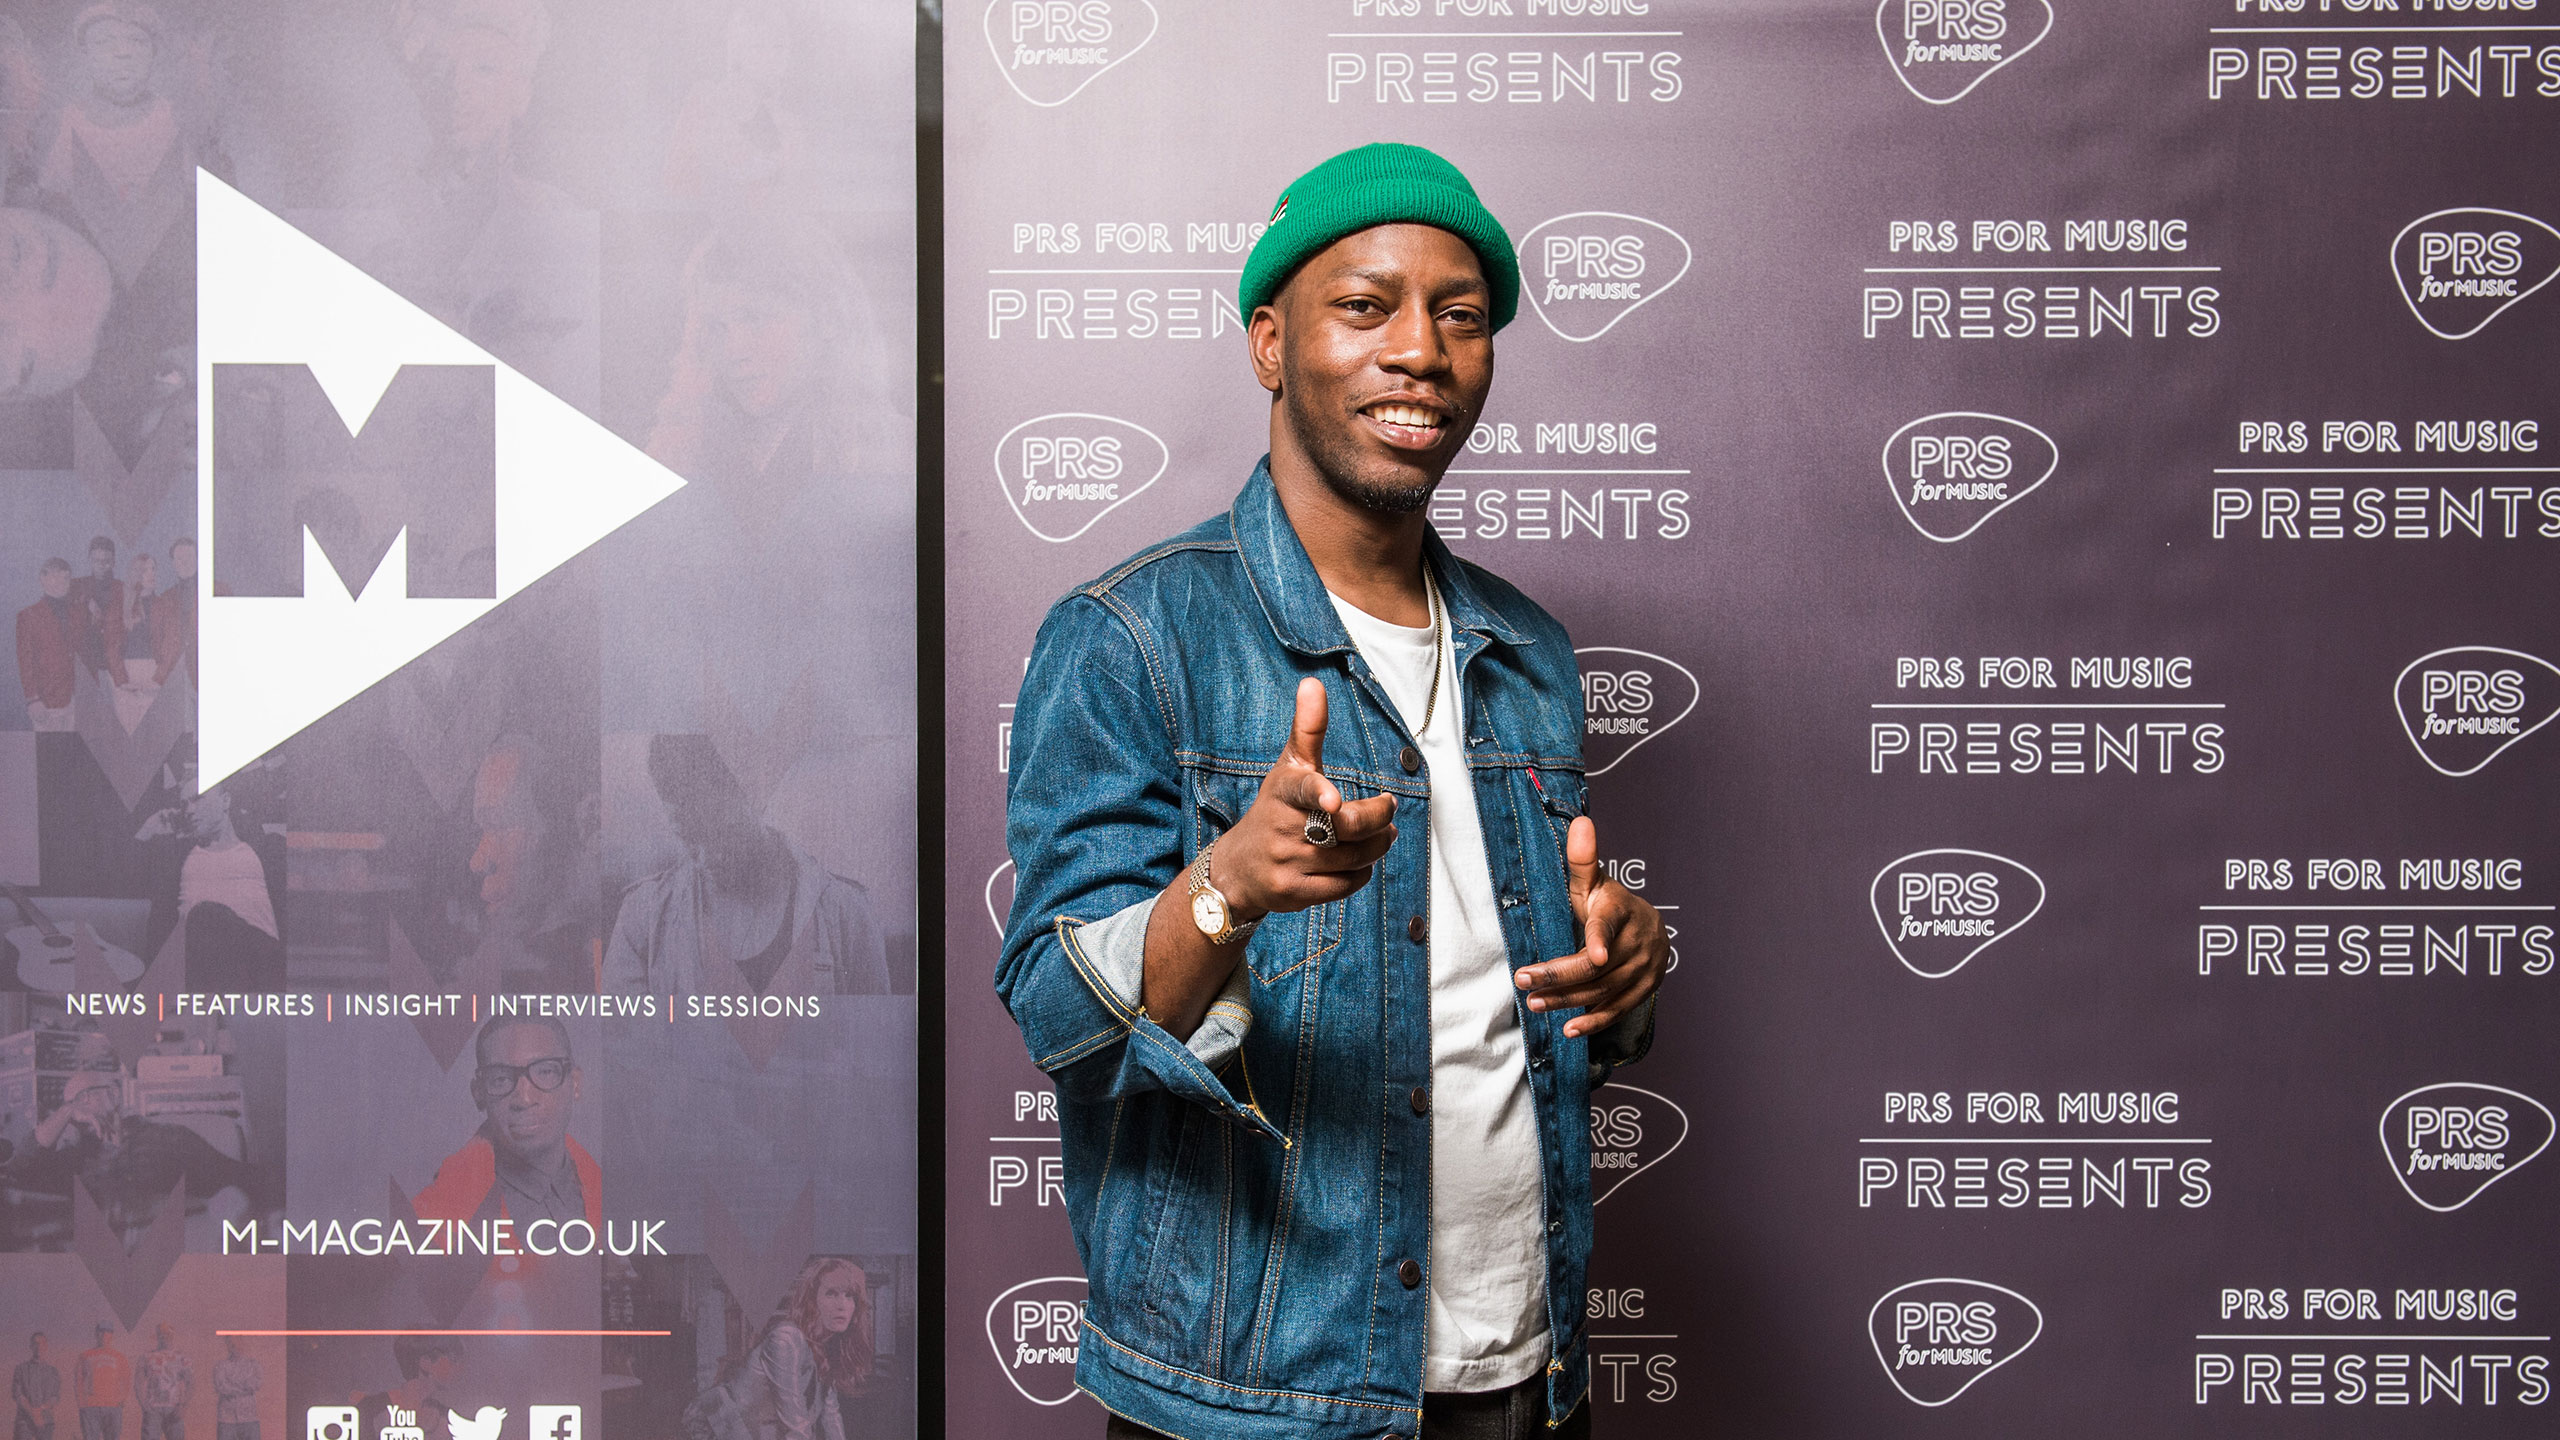 Tiggs Da Author points at the camera in front of the PRS for Music backdrop, wearing a green beanie hat, white t shirt and denim jacket